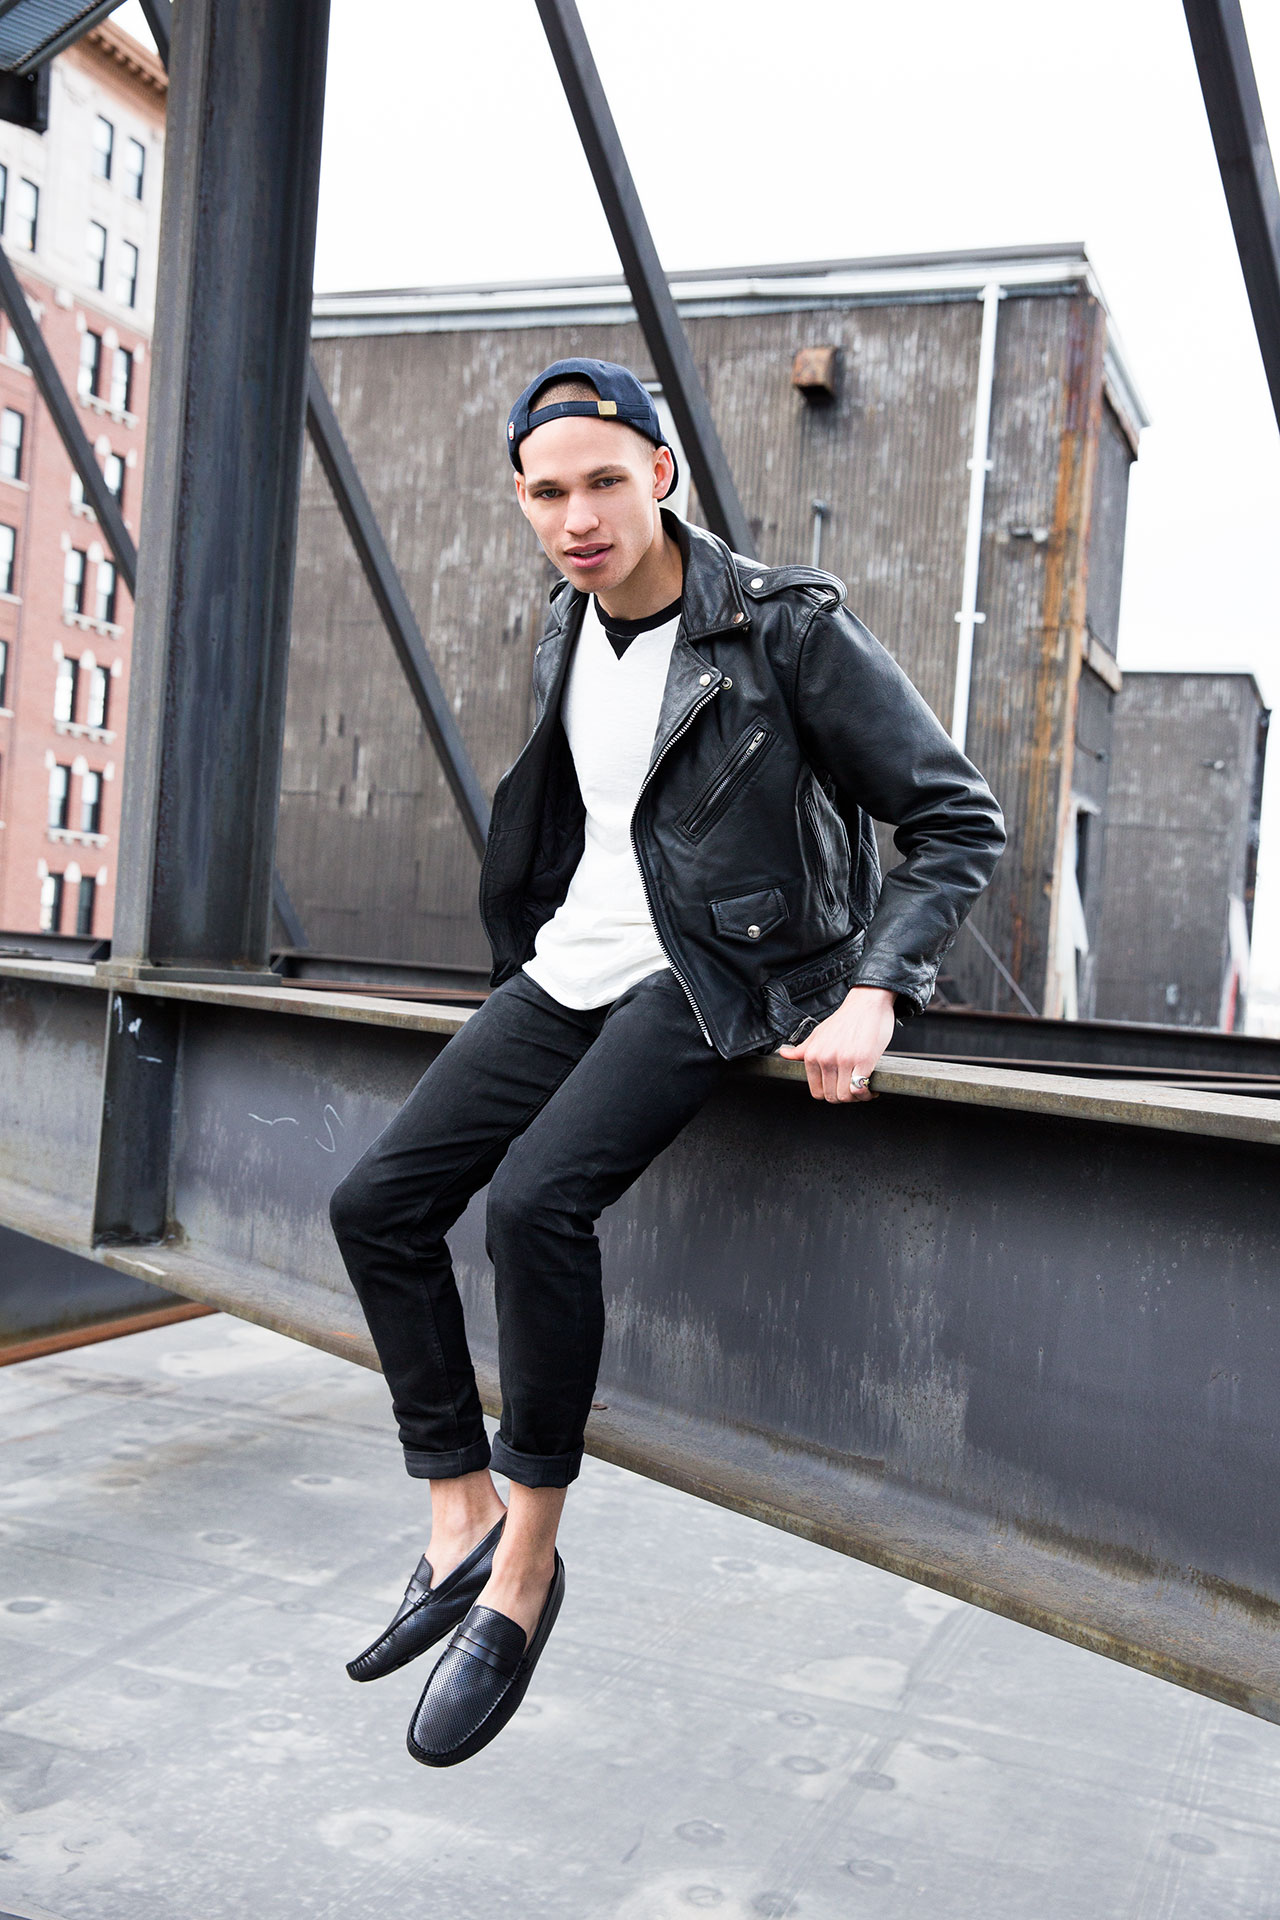 steve-madden-fw15-campaign-styled-by-andrea-messier-cuomo-4.jpg